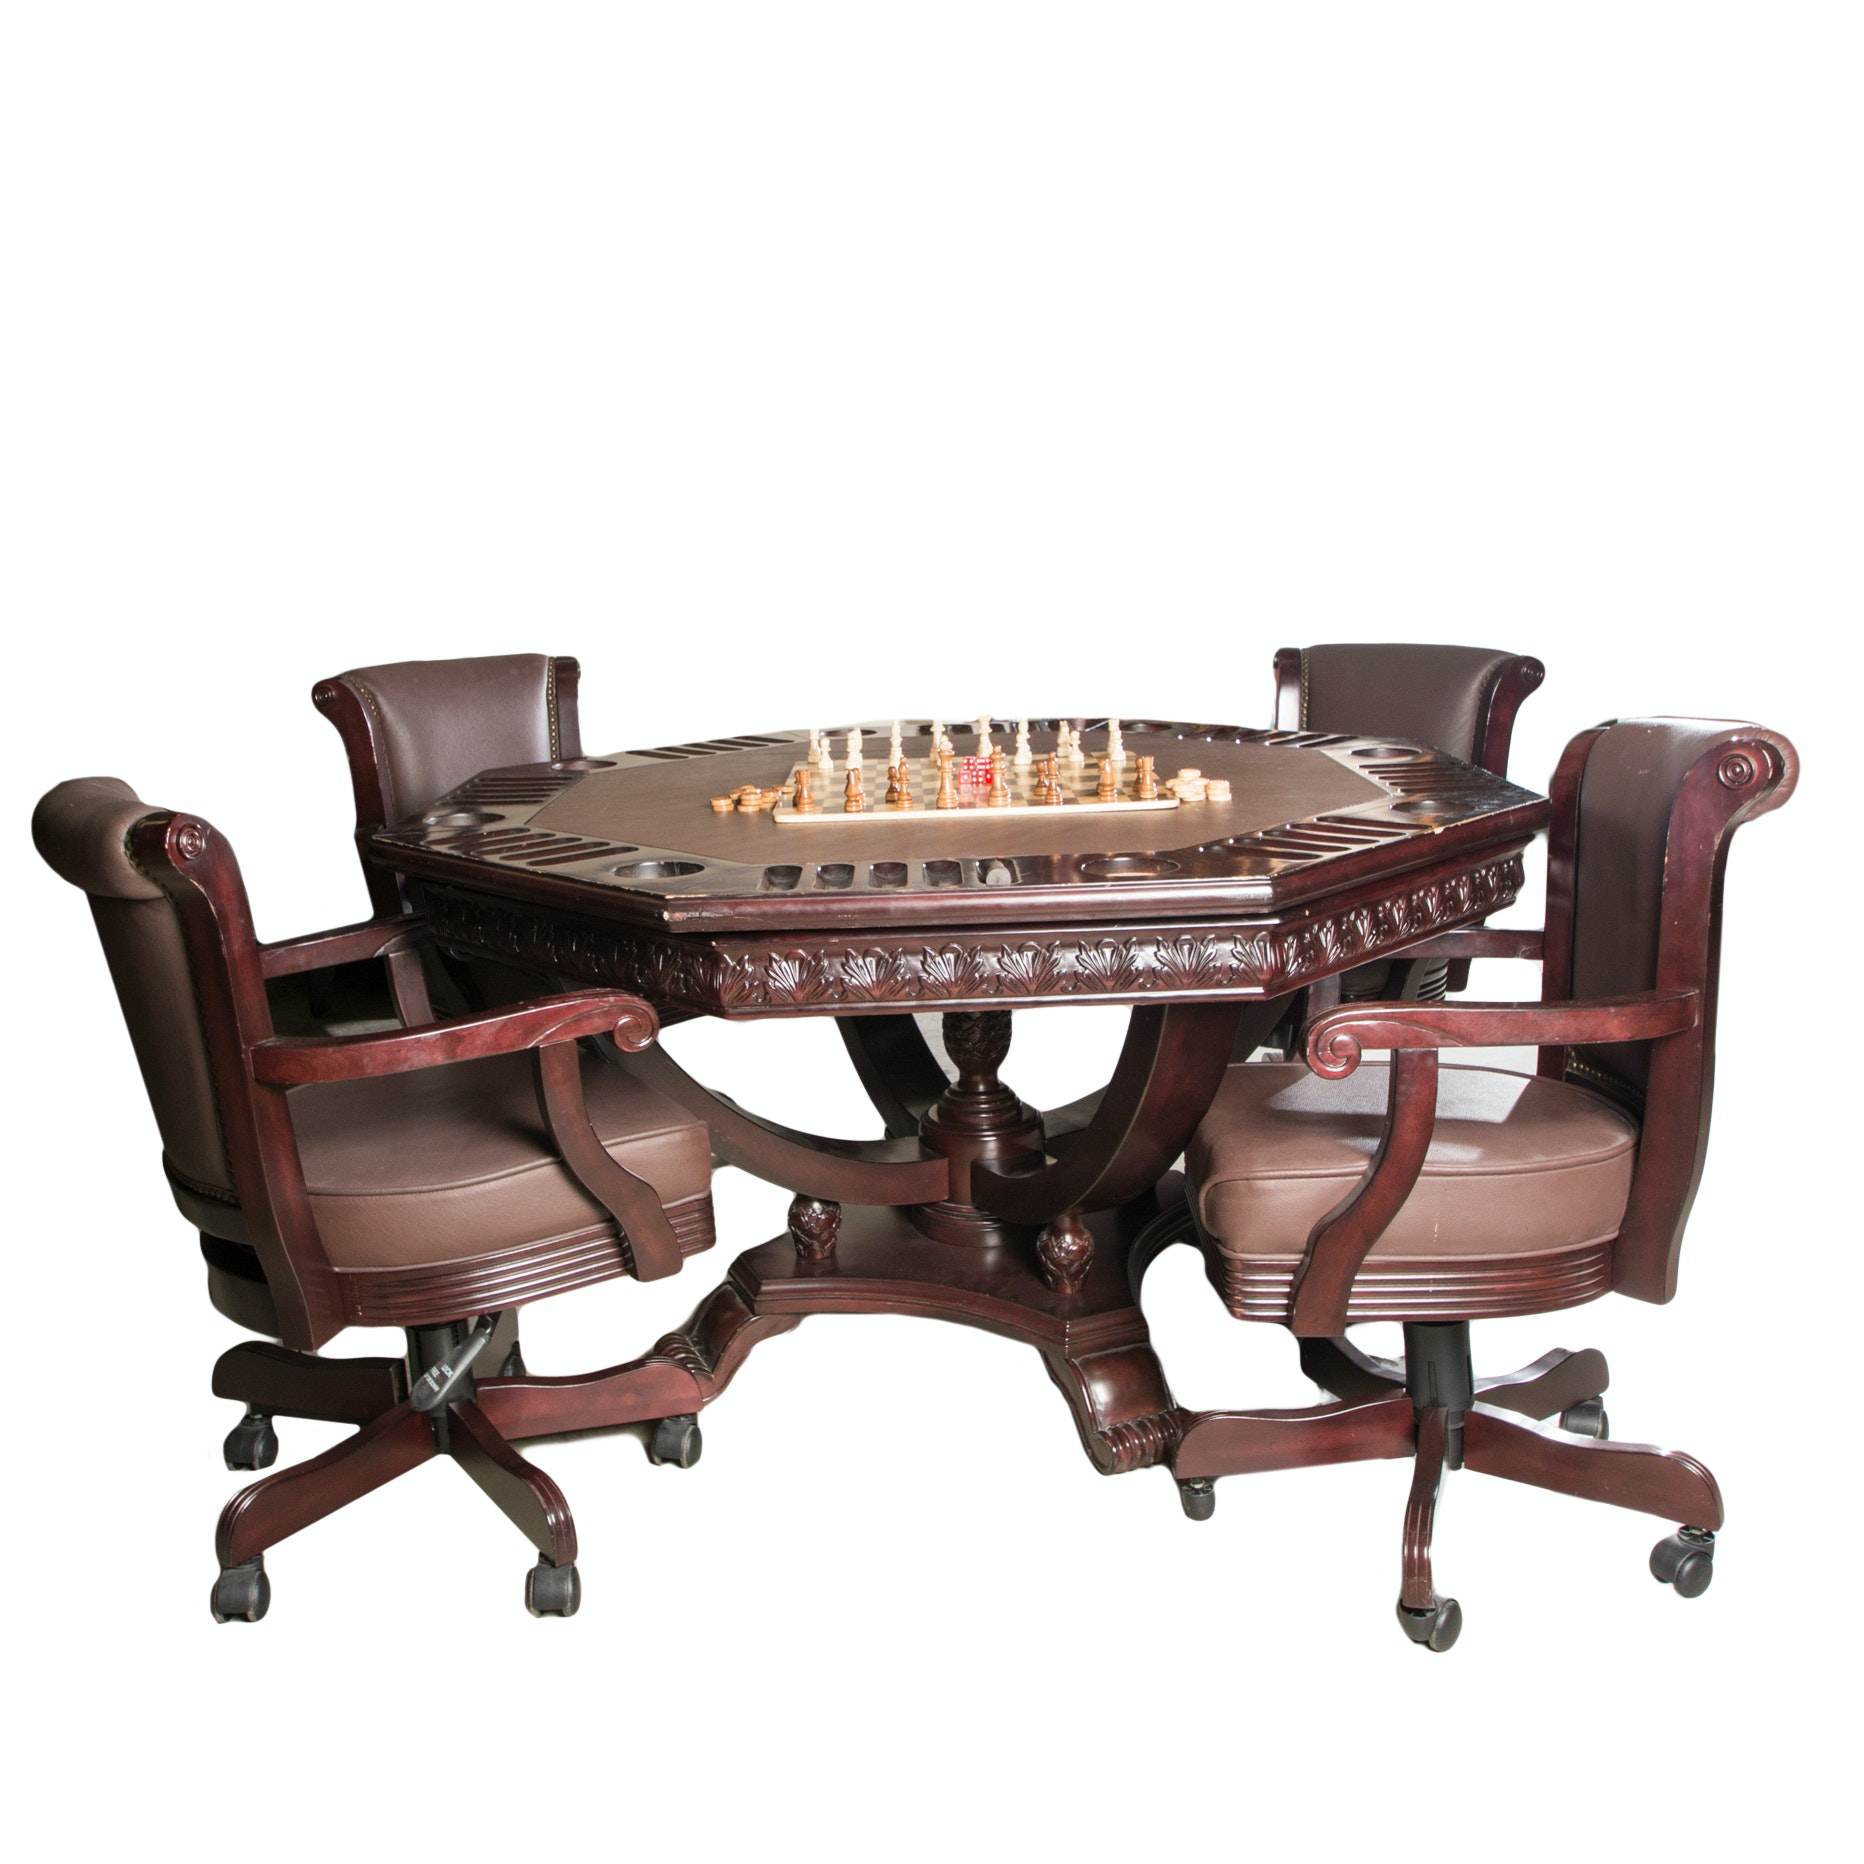 Charmant Imperial International Game Table With Chairs ...